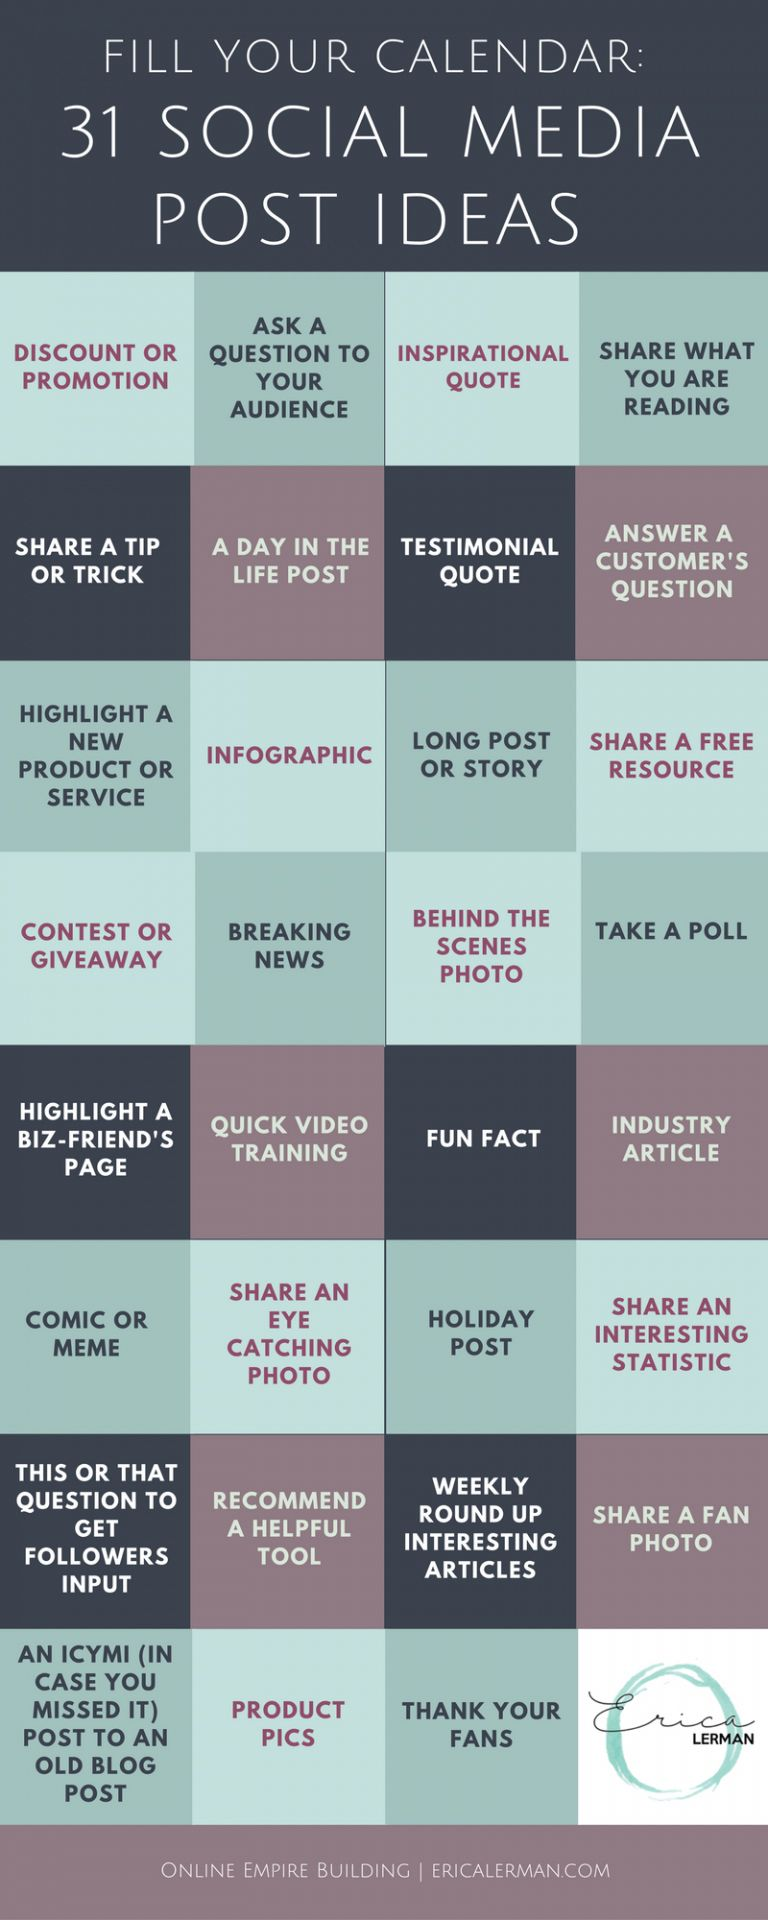 What to Post on Social Media: 31 Content Ideas to Delight Your Followers [Infographic]